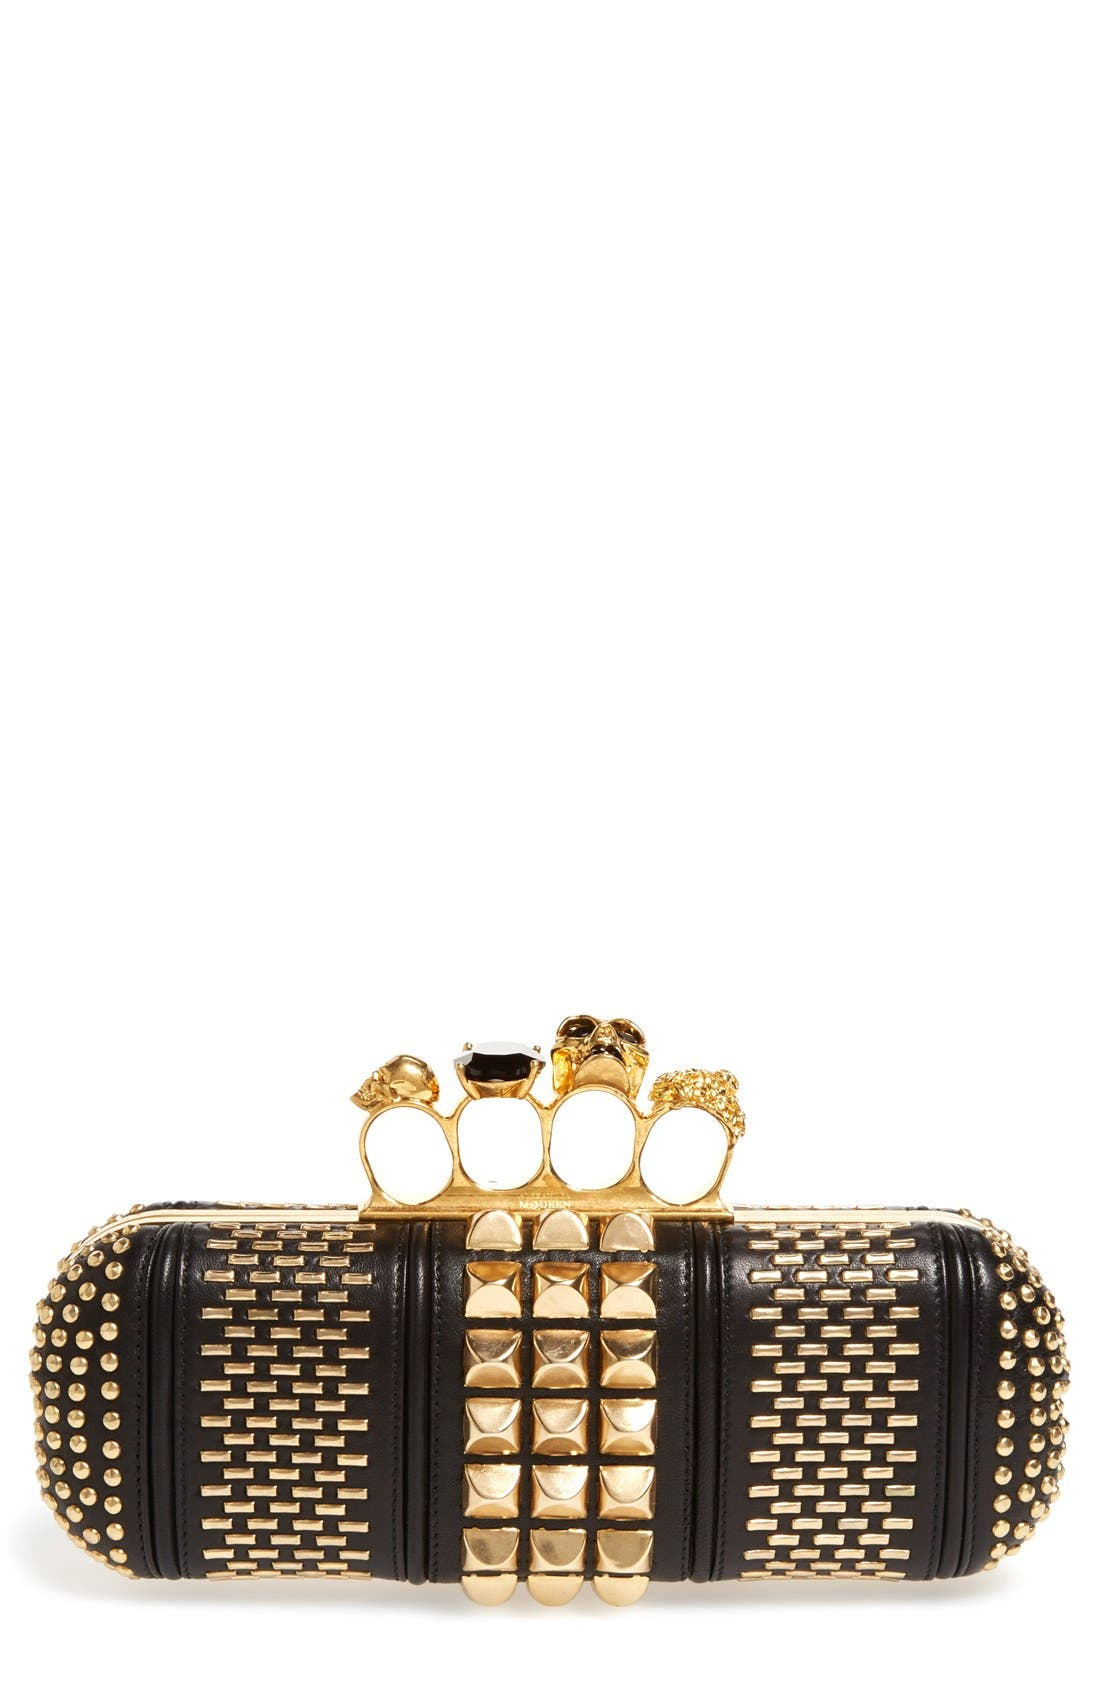 Main Image - Alexander McQueen Knuckle Clasp Graphic Studded Box Clutch